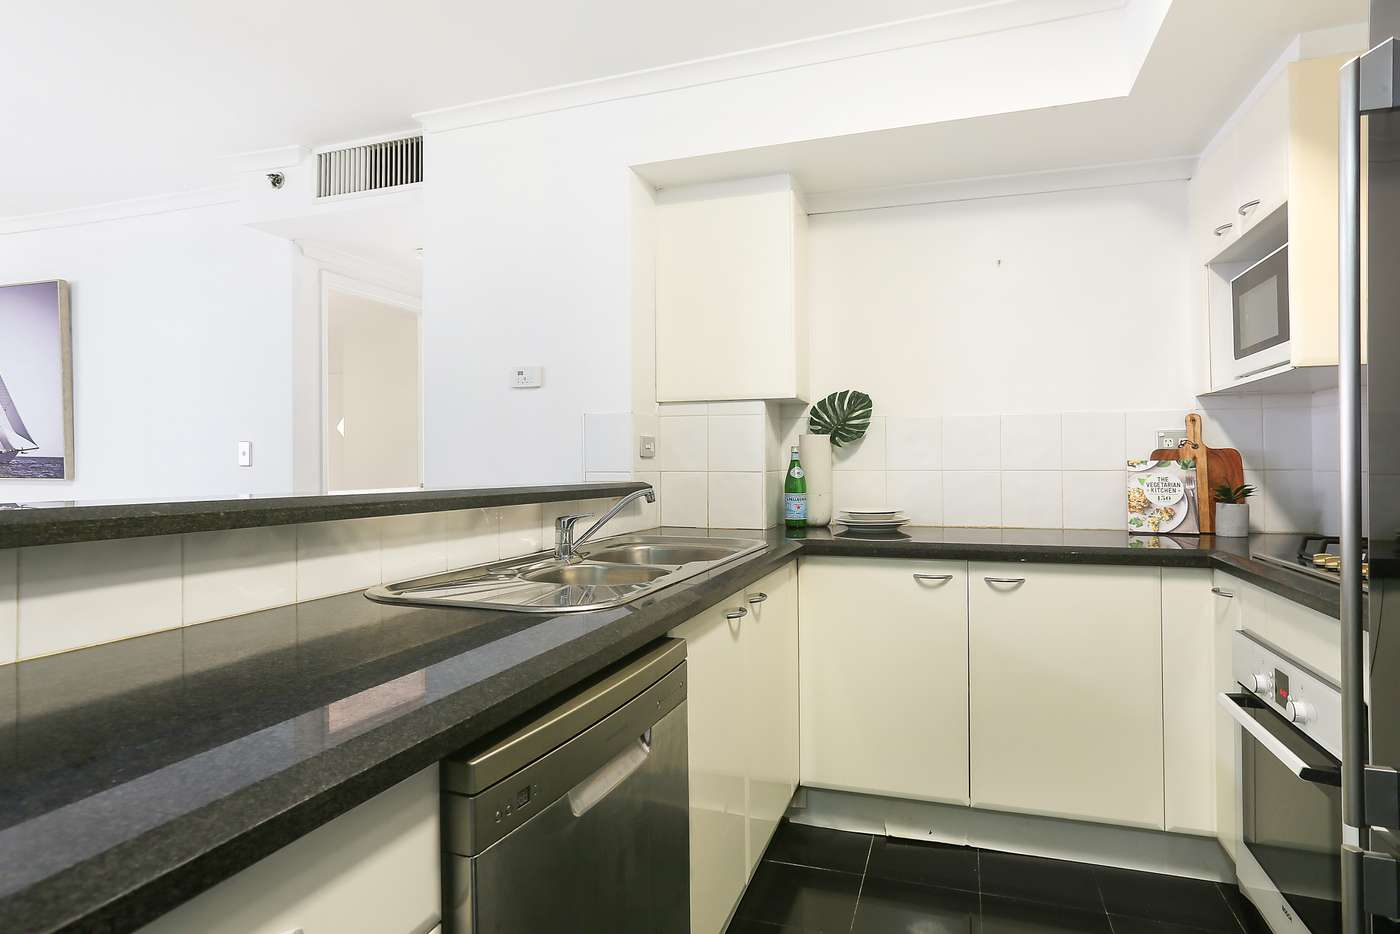 Fifth view of Homely apartment listing, 253/303 Castlereagh St, Sydney NSW 2000